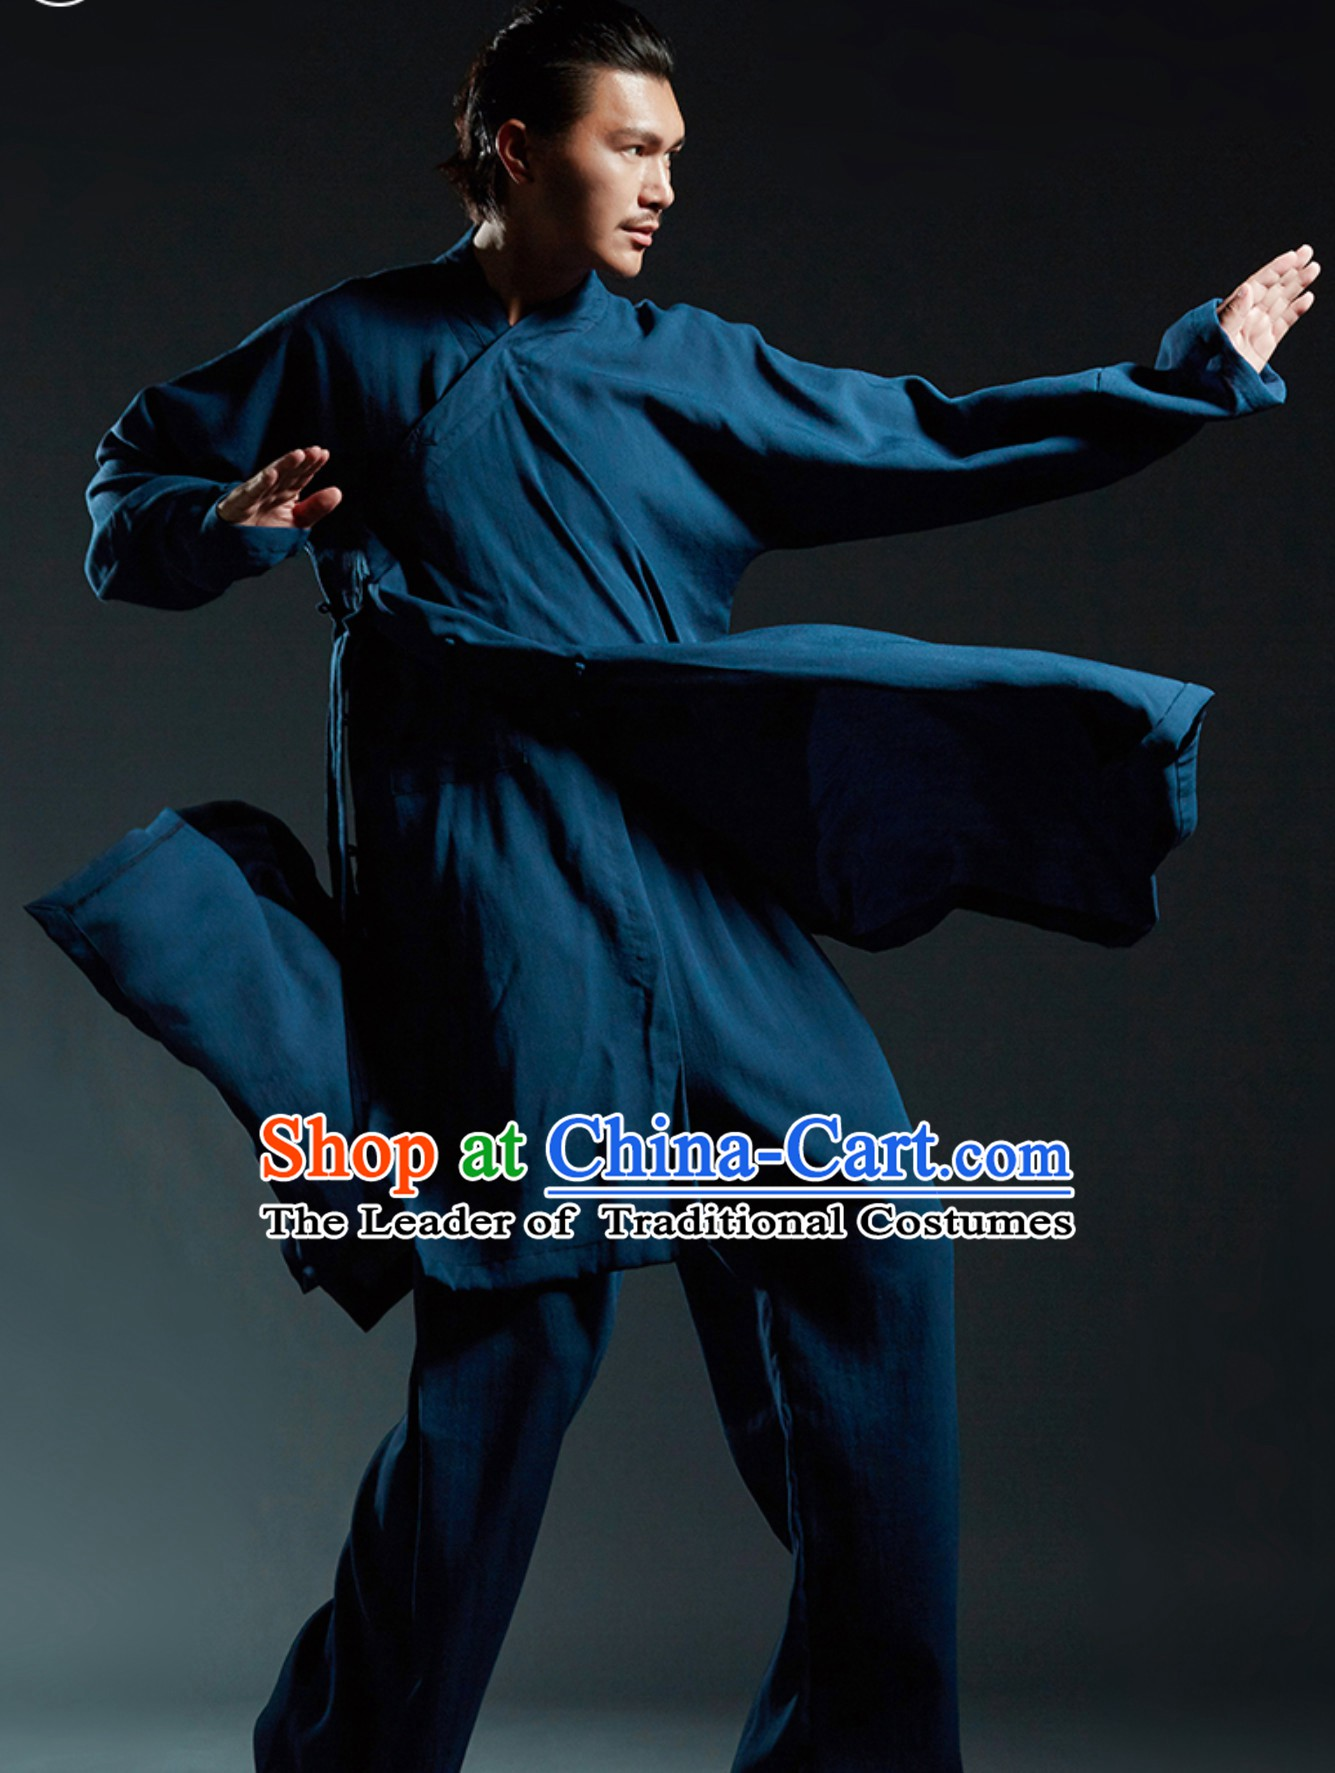 Deep Blue Chinese Classical Tai Chi Wushu Martial Arts Uniform Clothing Complete Set for Men Women Kids